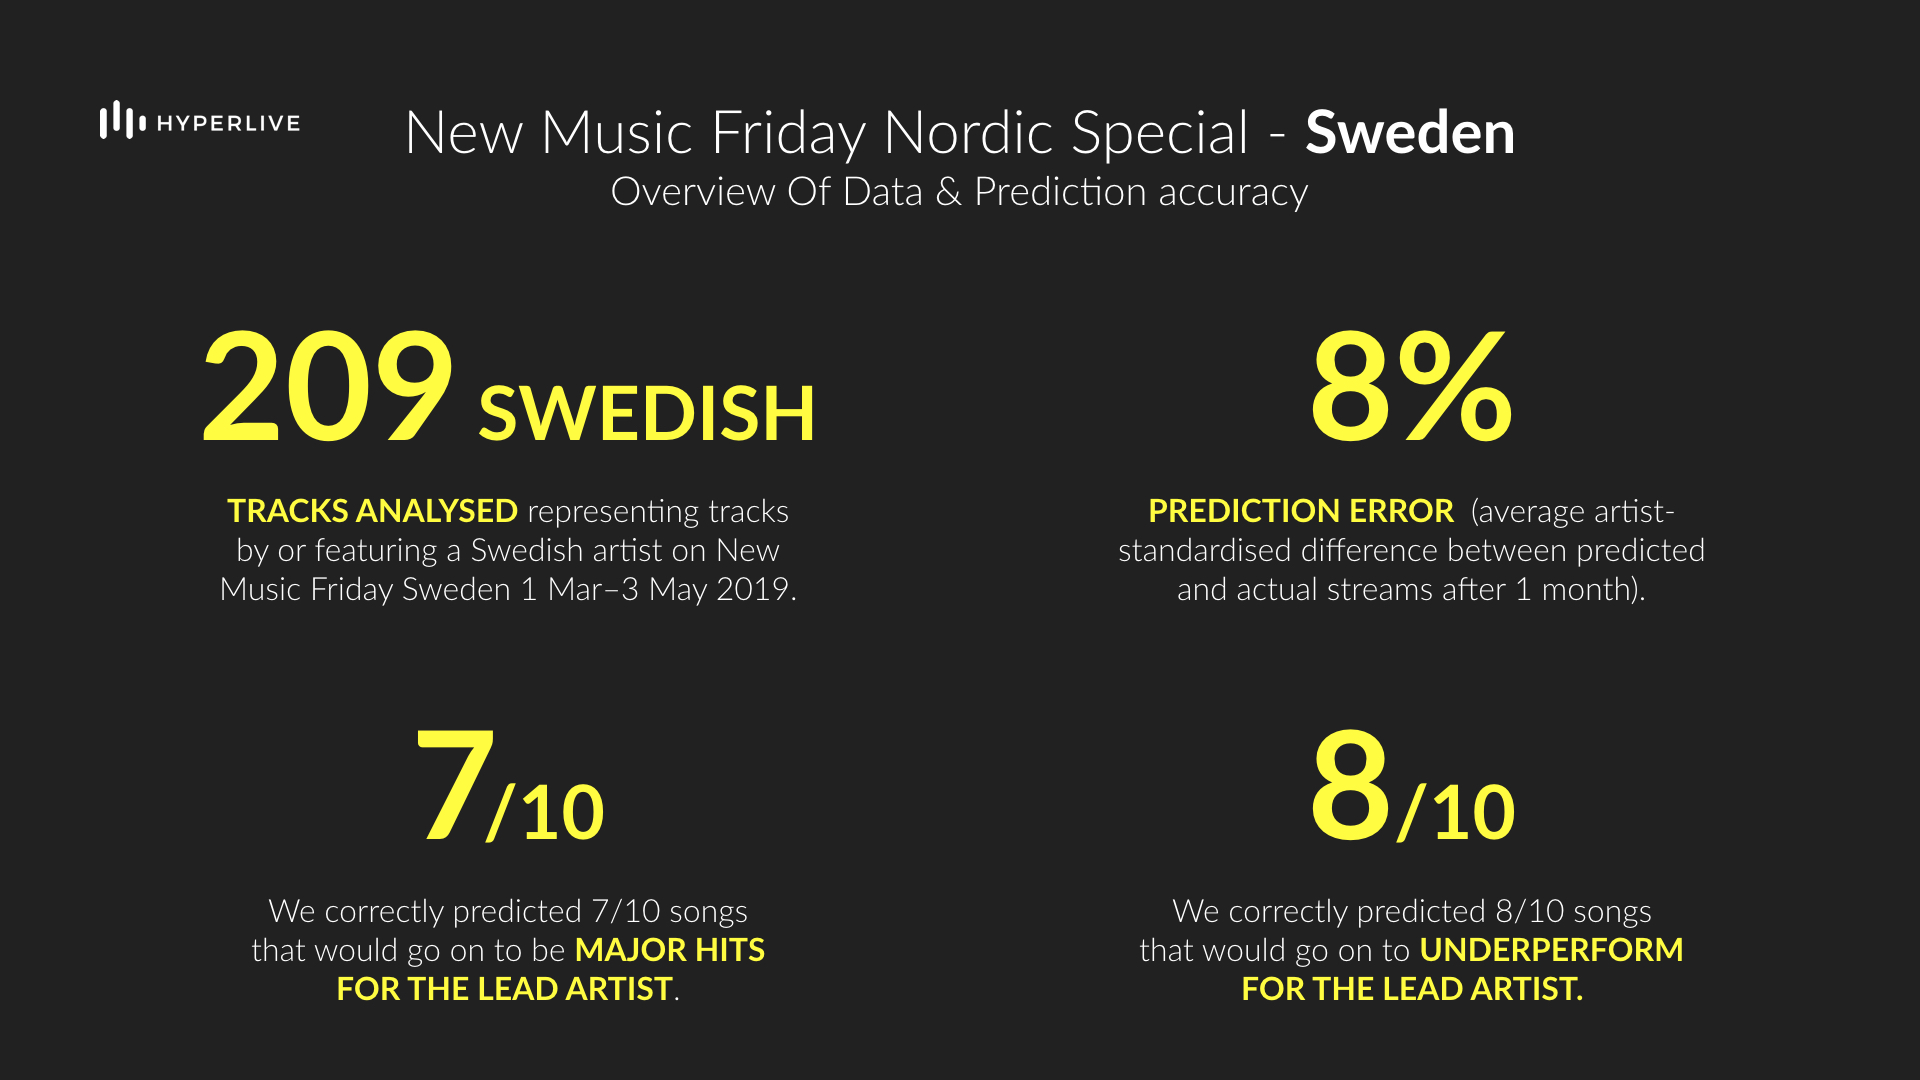 We predicted commercial performance of over 200 new Swedish tracks with a high degree of accuracy over both the short- and medium-term.